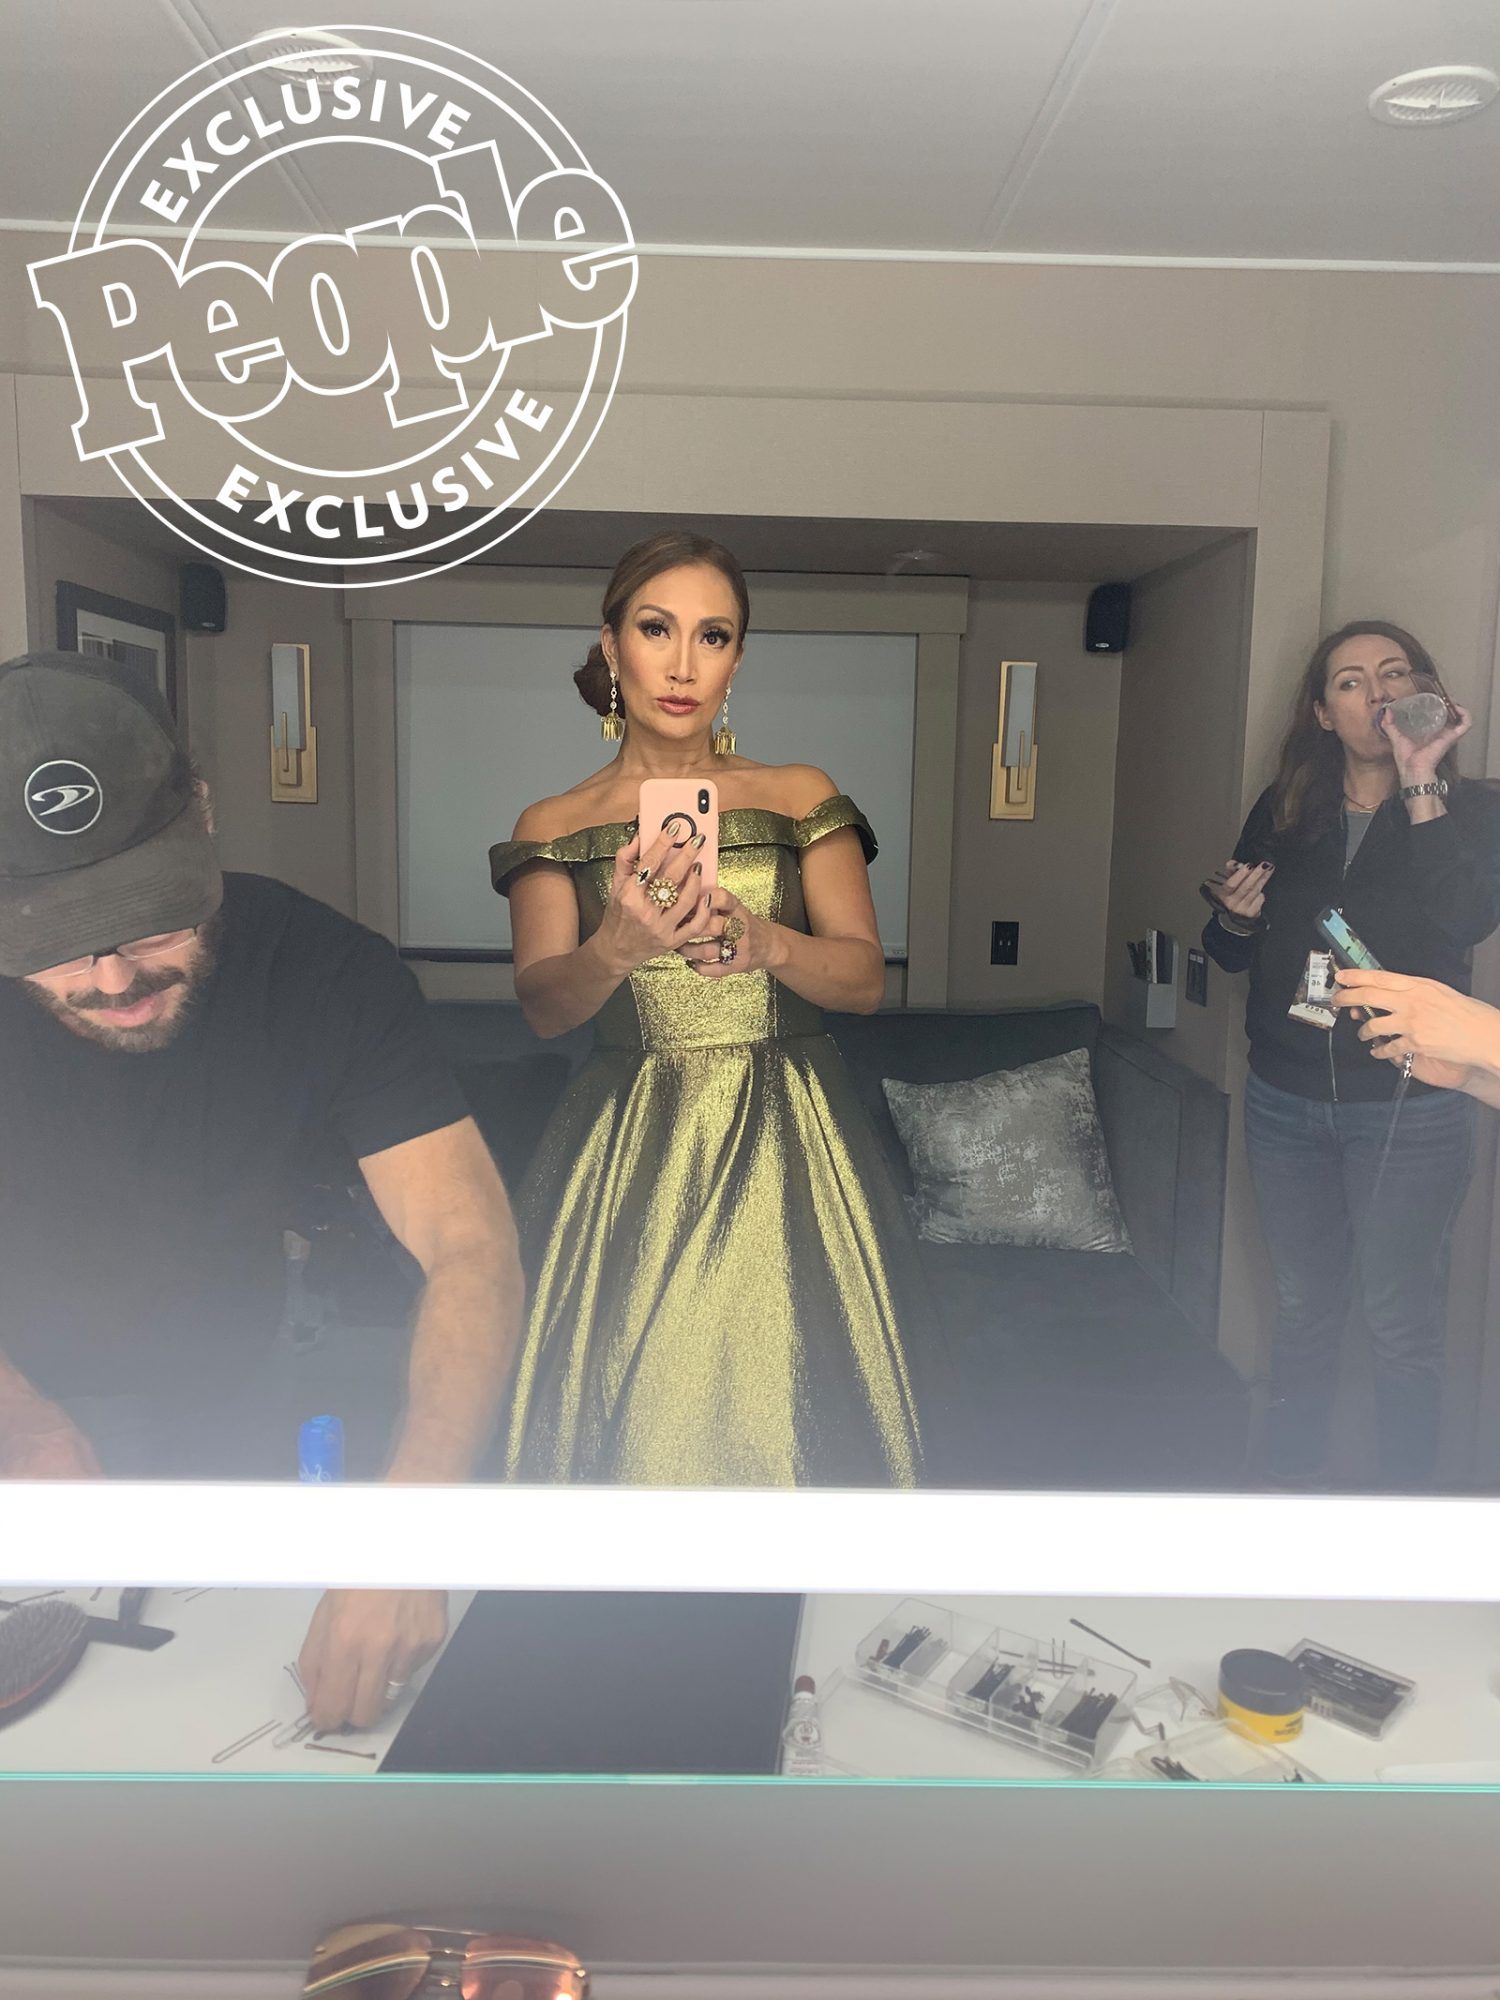 Carrie Ann Inaba getting ready for Dancing with the Stars